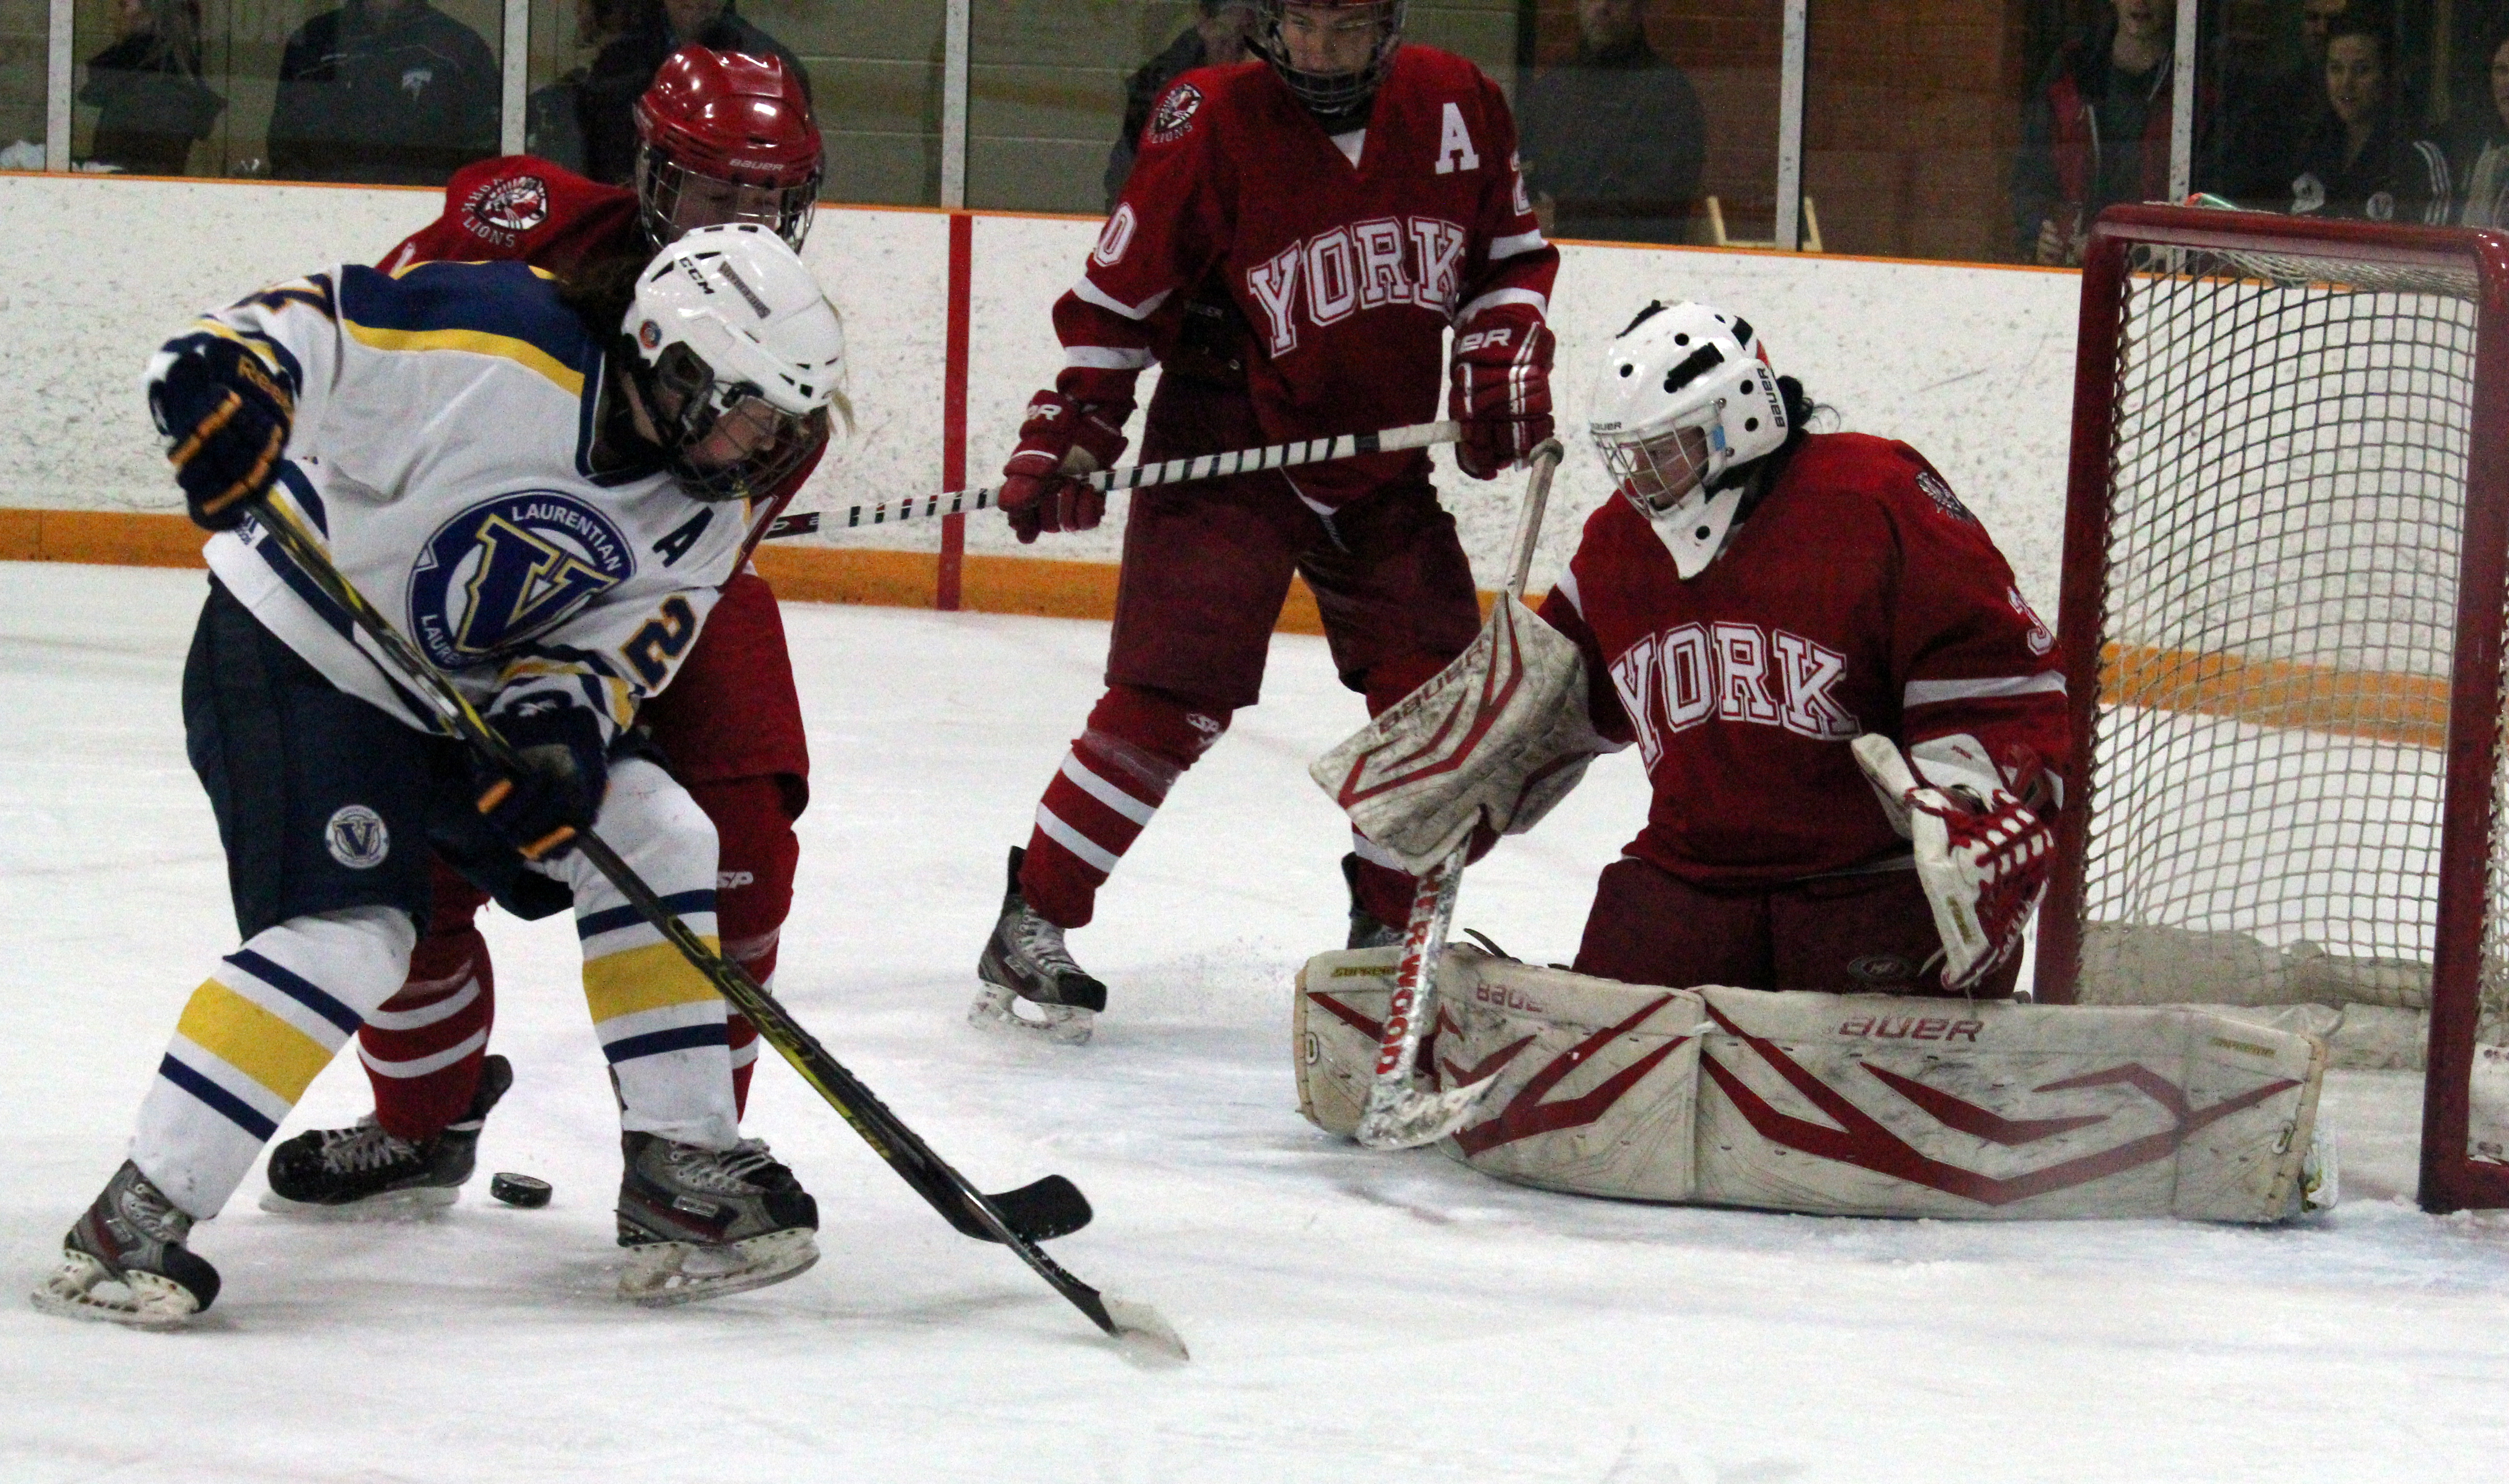 The Laurentian women's hockey team faces the York University Lions on Nov. 16. Photo by Gabriel Rodrigues